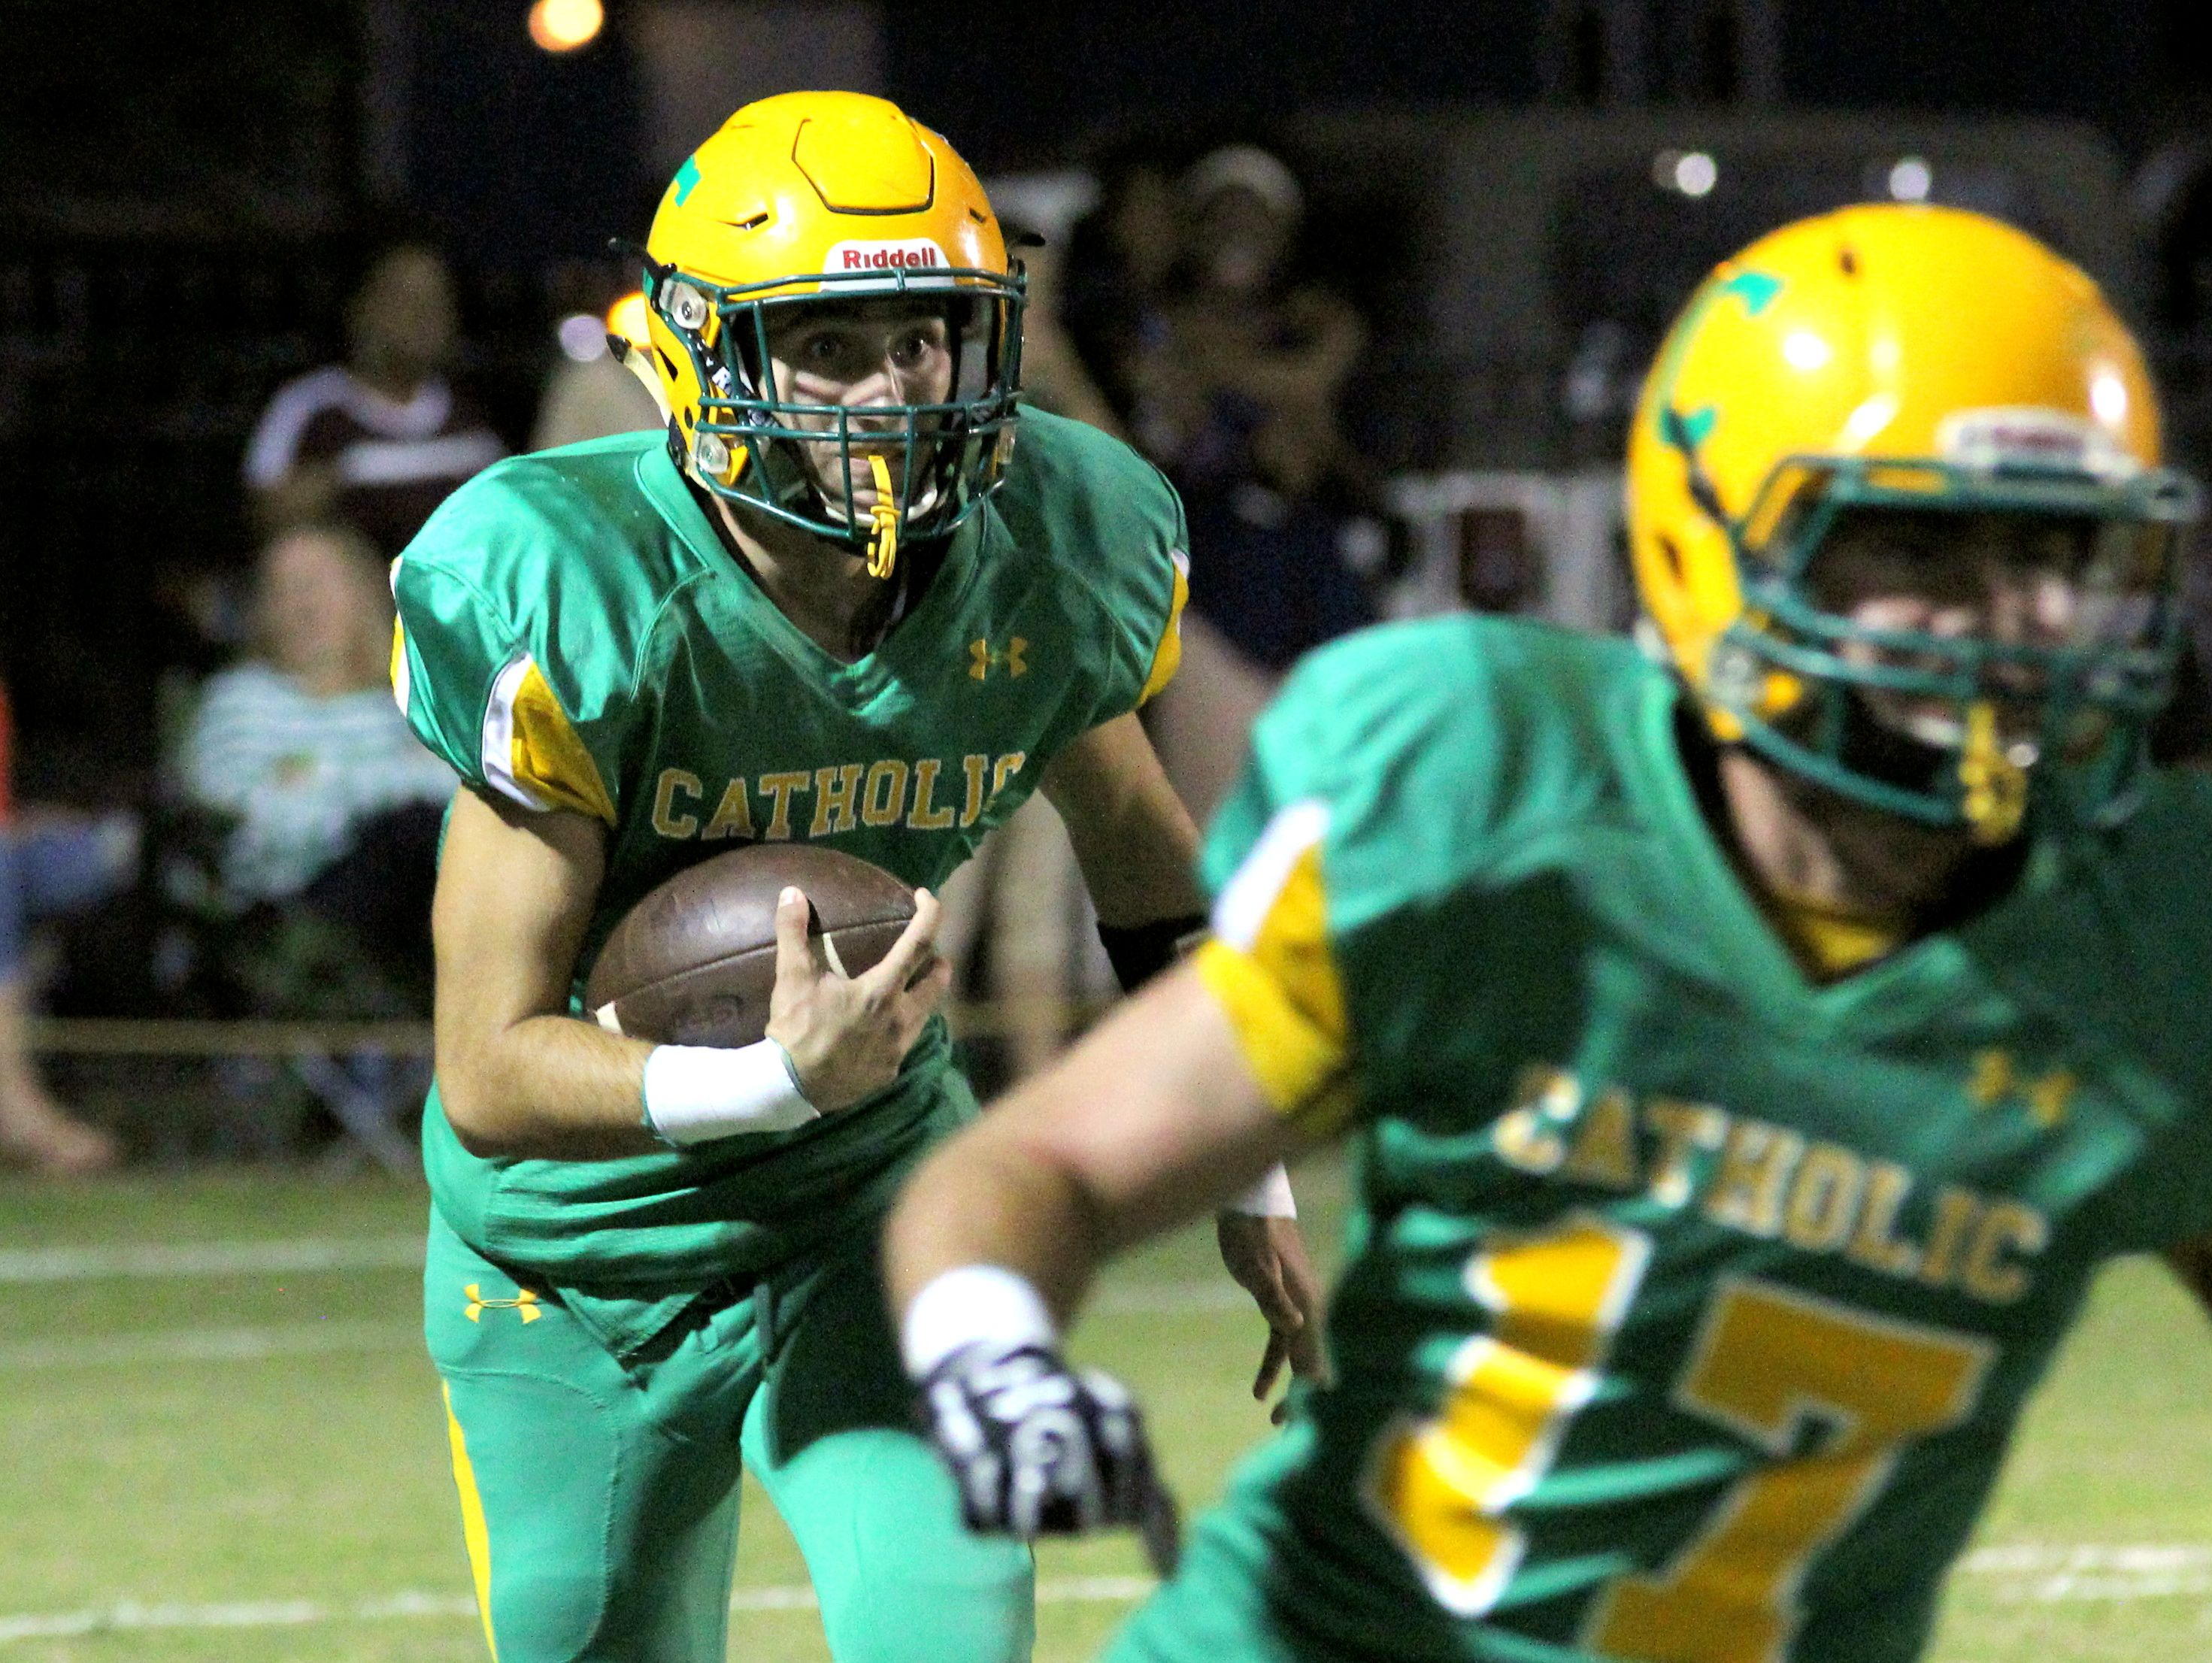 Catholic's A,J. Yates is wide-eyed as he returns a kickoff in the first half.